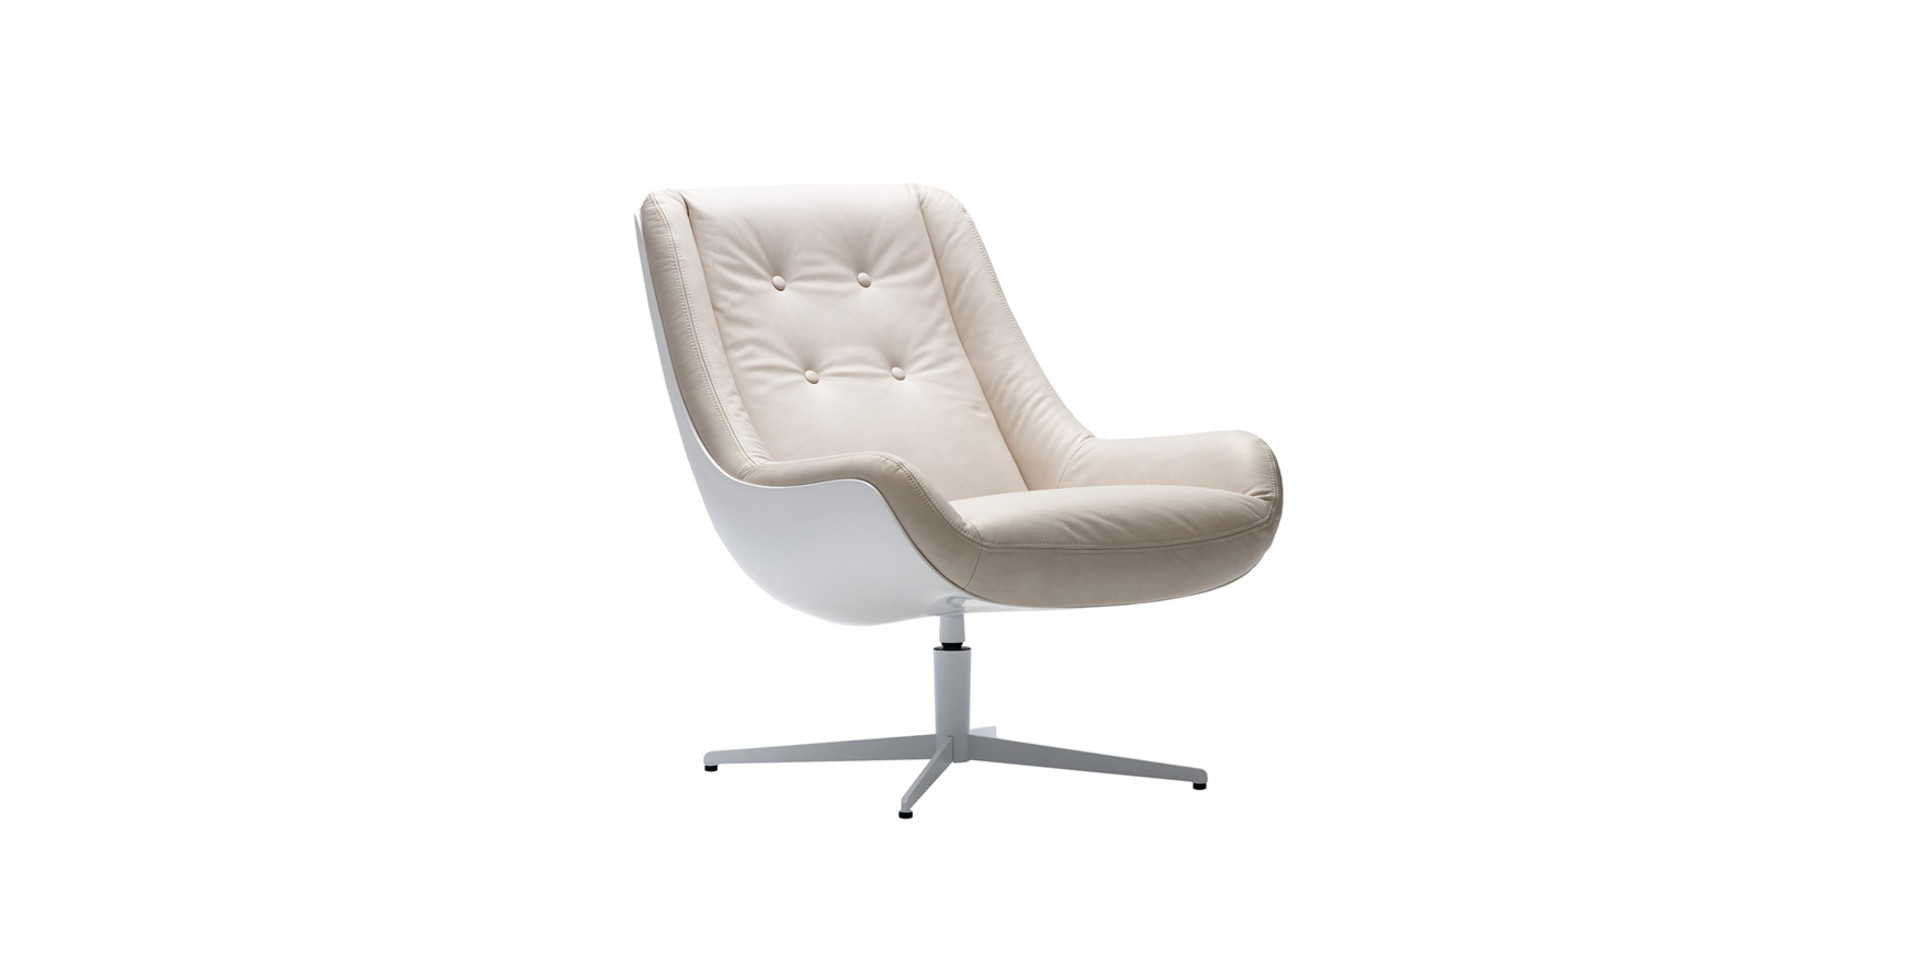 LOVEBIRD_armchair_swivel_white_buttons_aniline_nature_2